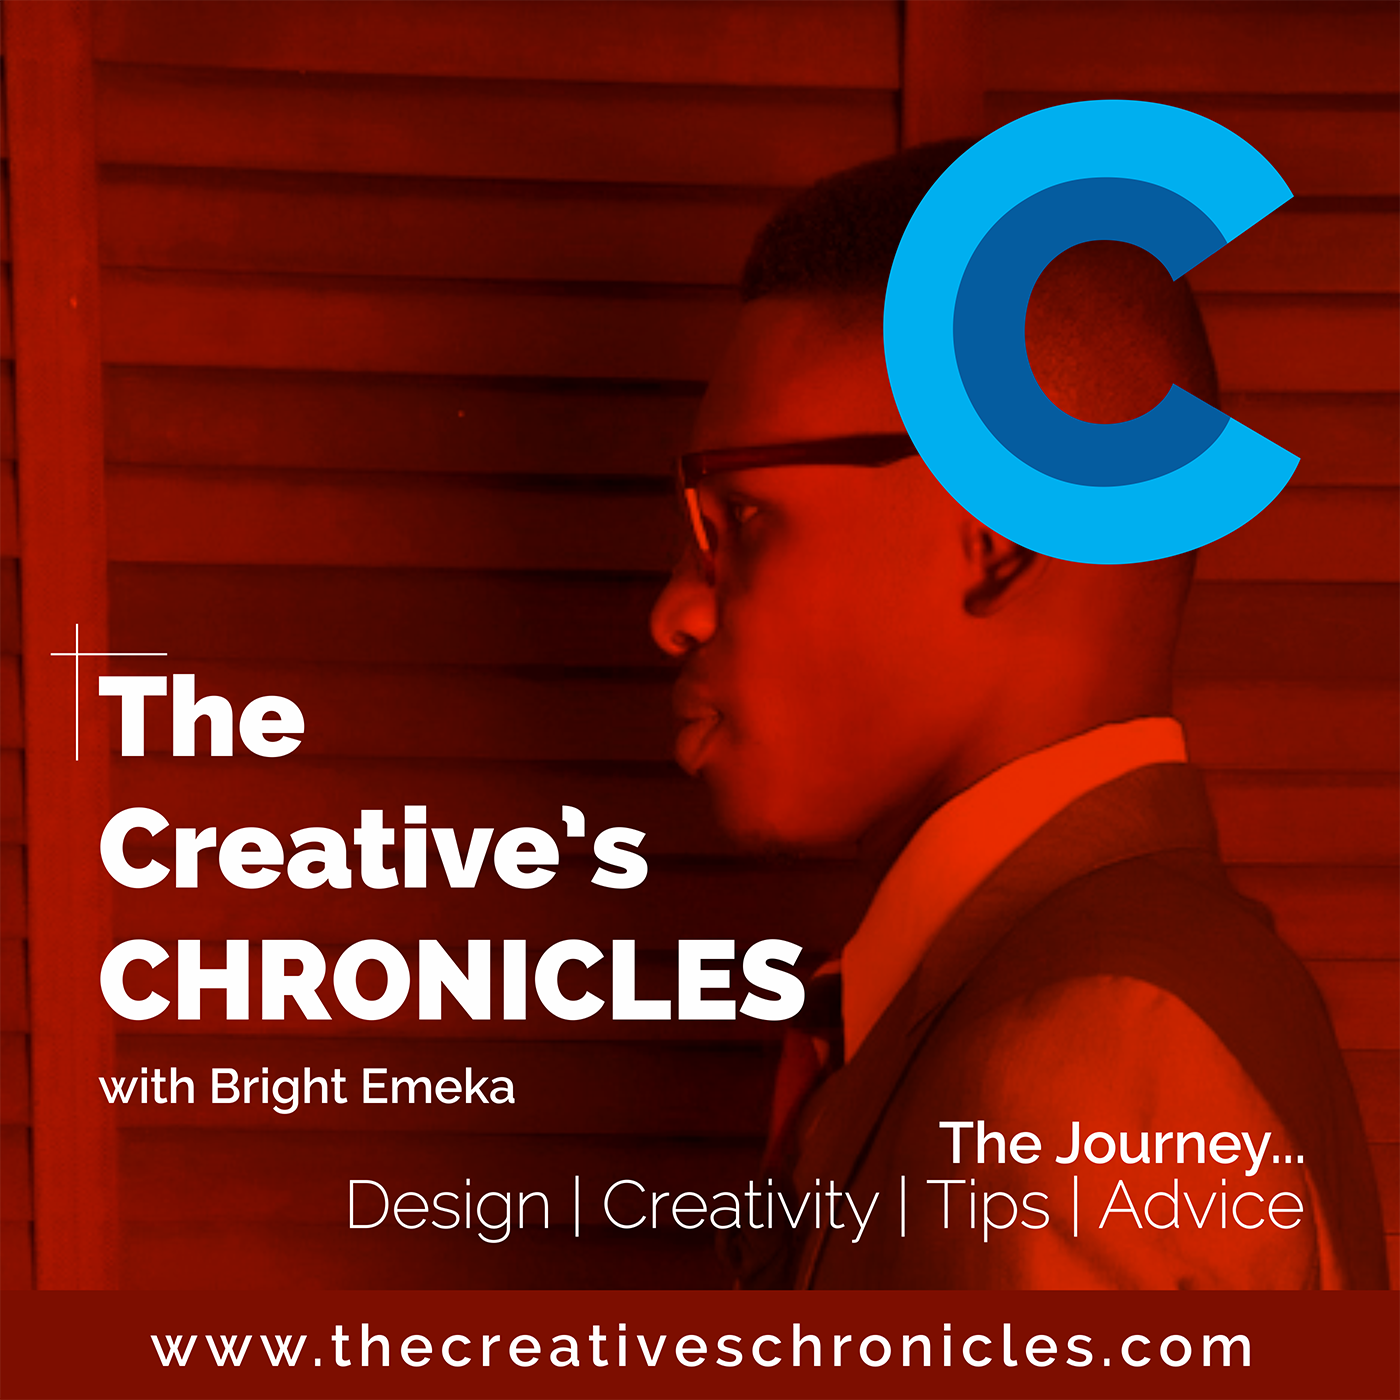 thecreativeschronicles show image